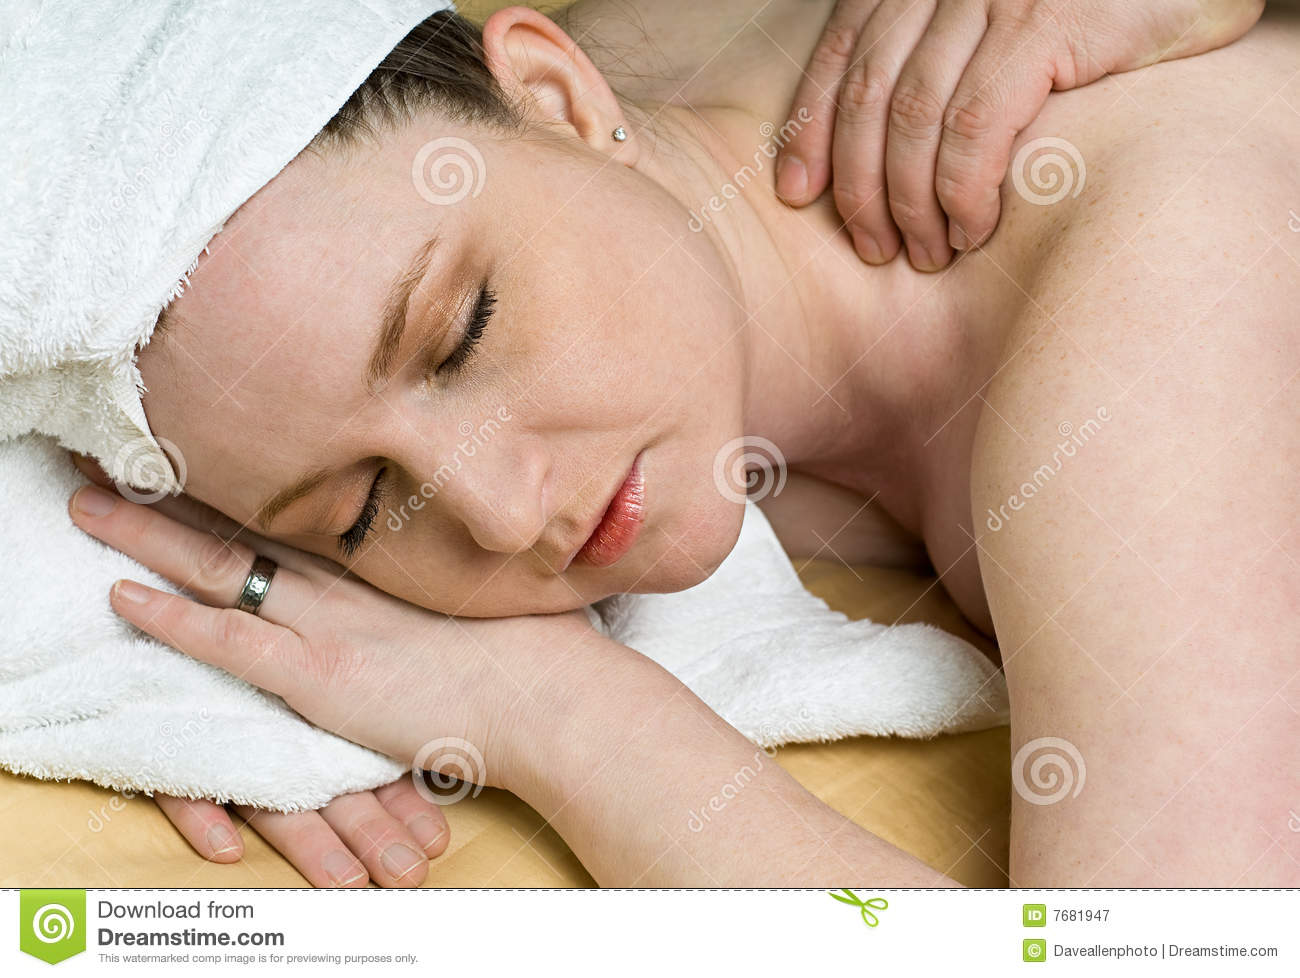 Massage Day Spa Interior Design also Small Chiropractic Office Floor Plan also Physical Therapy Gym Floor Plan further Kegel Exercise Seem Simple Right Did You Know You Can Do Them Wrong furthermore Pulte Homes Floor Plans Las Vegas. on massage therapy floor plans